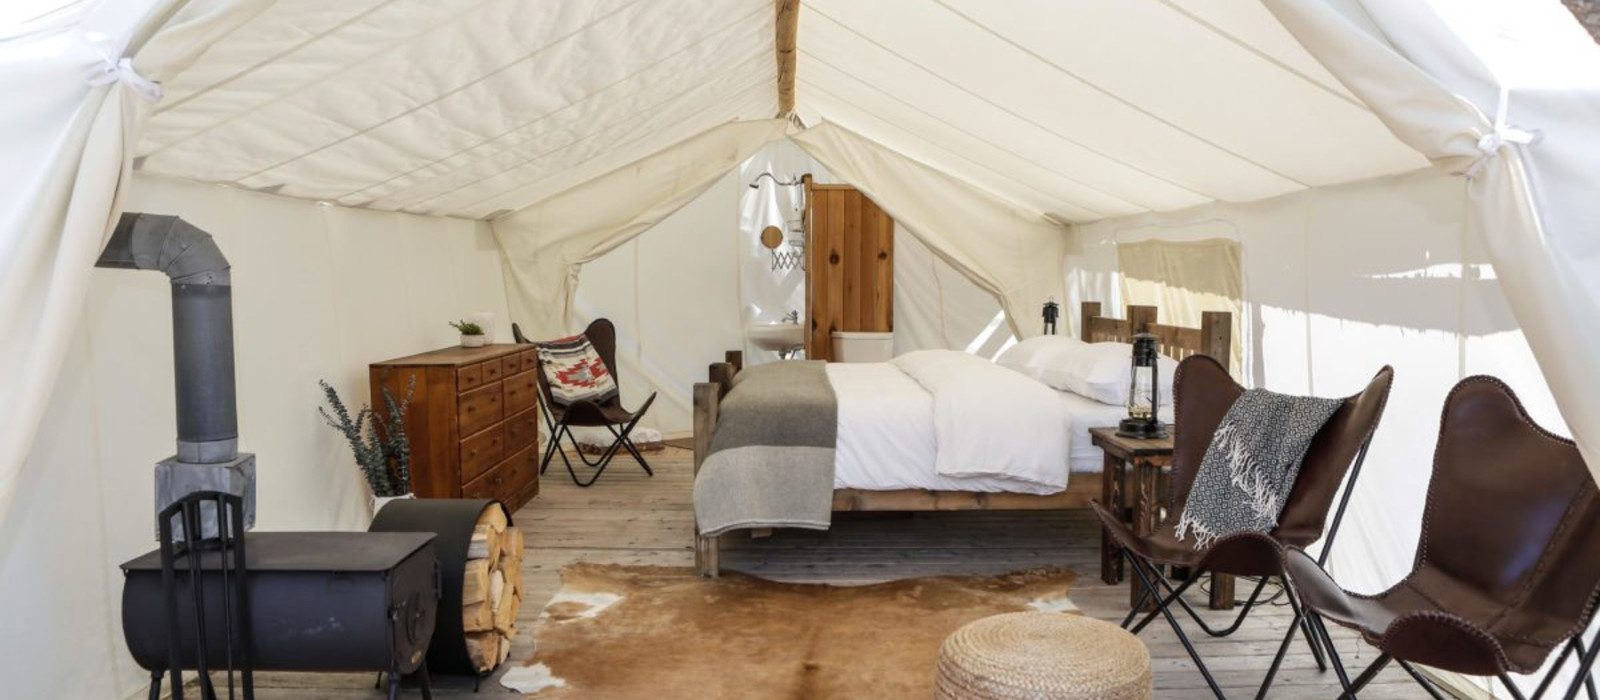 Hotel Under Canvas Grand Canyon USA